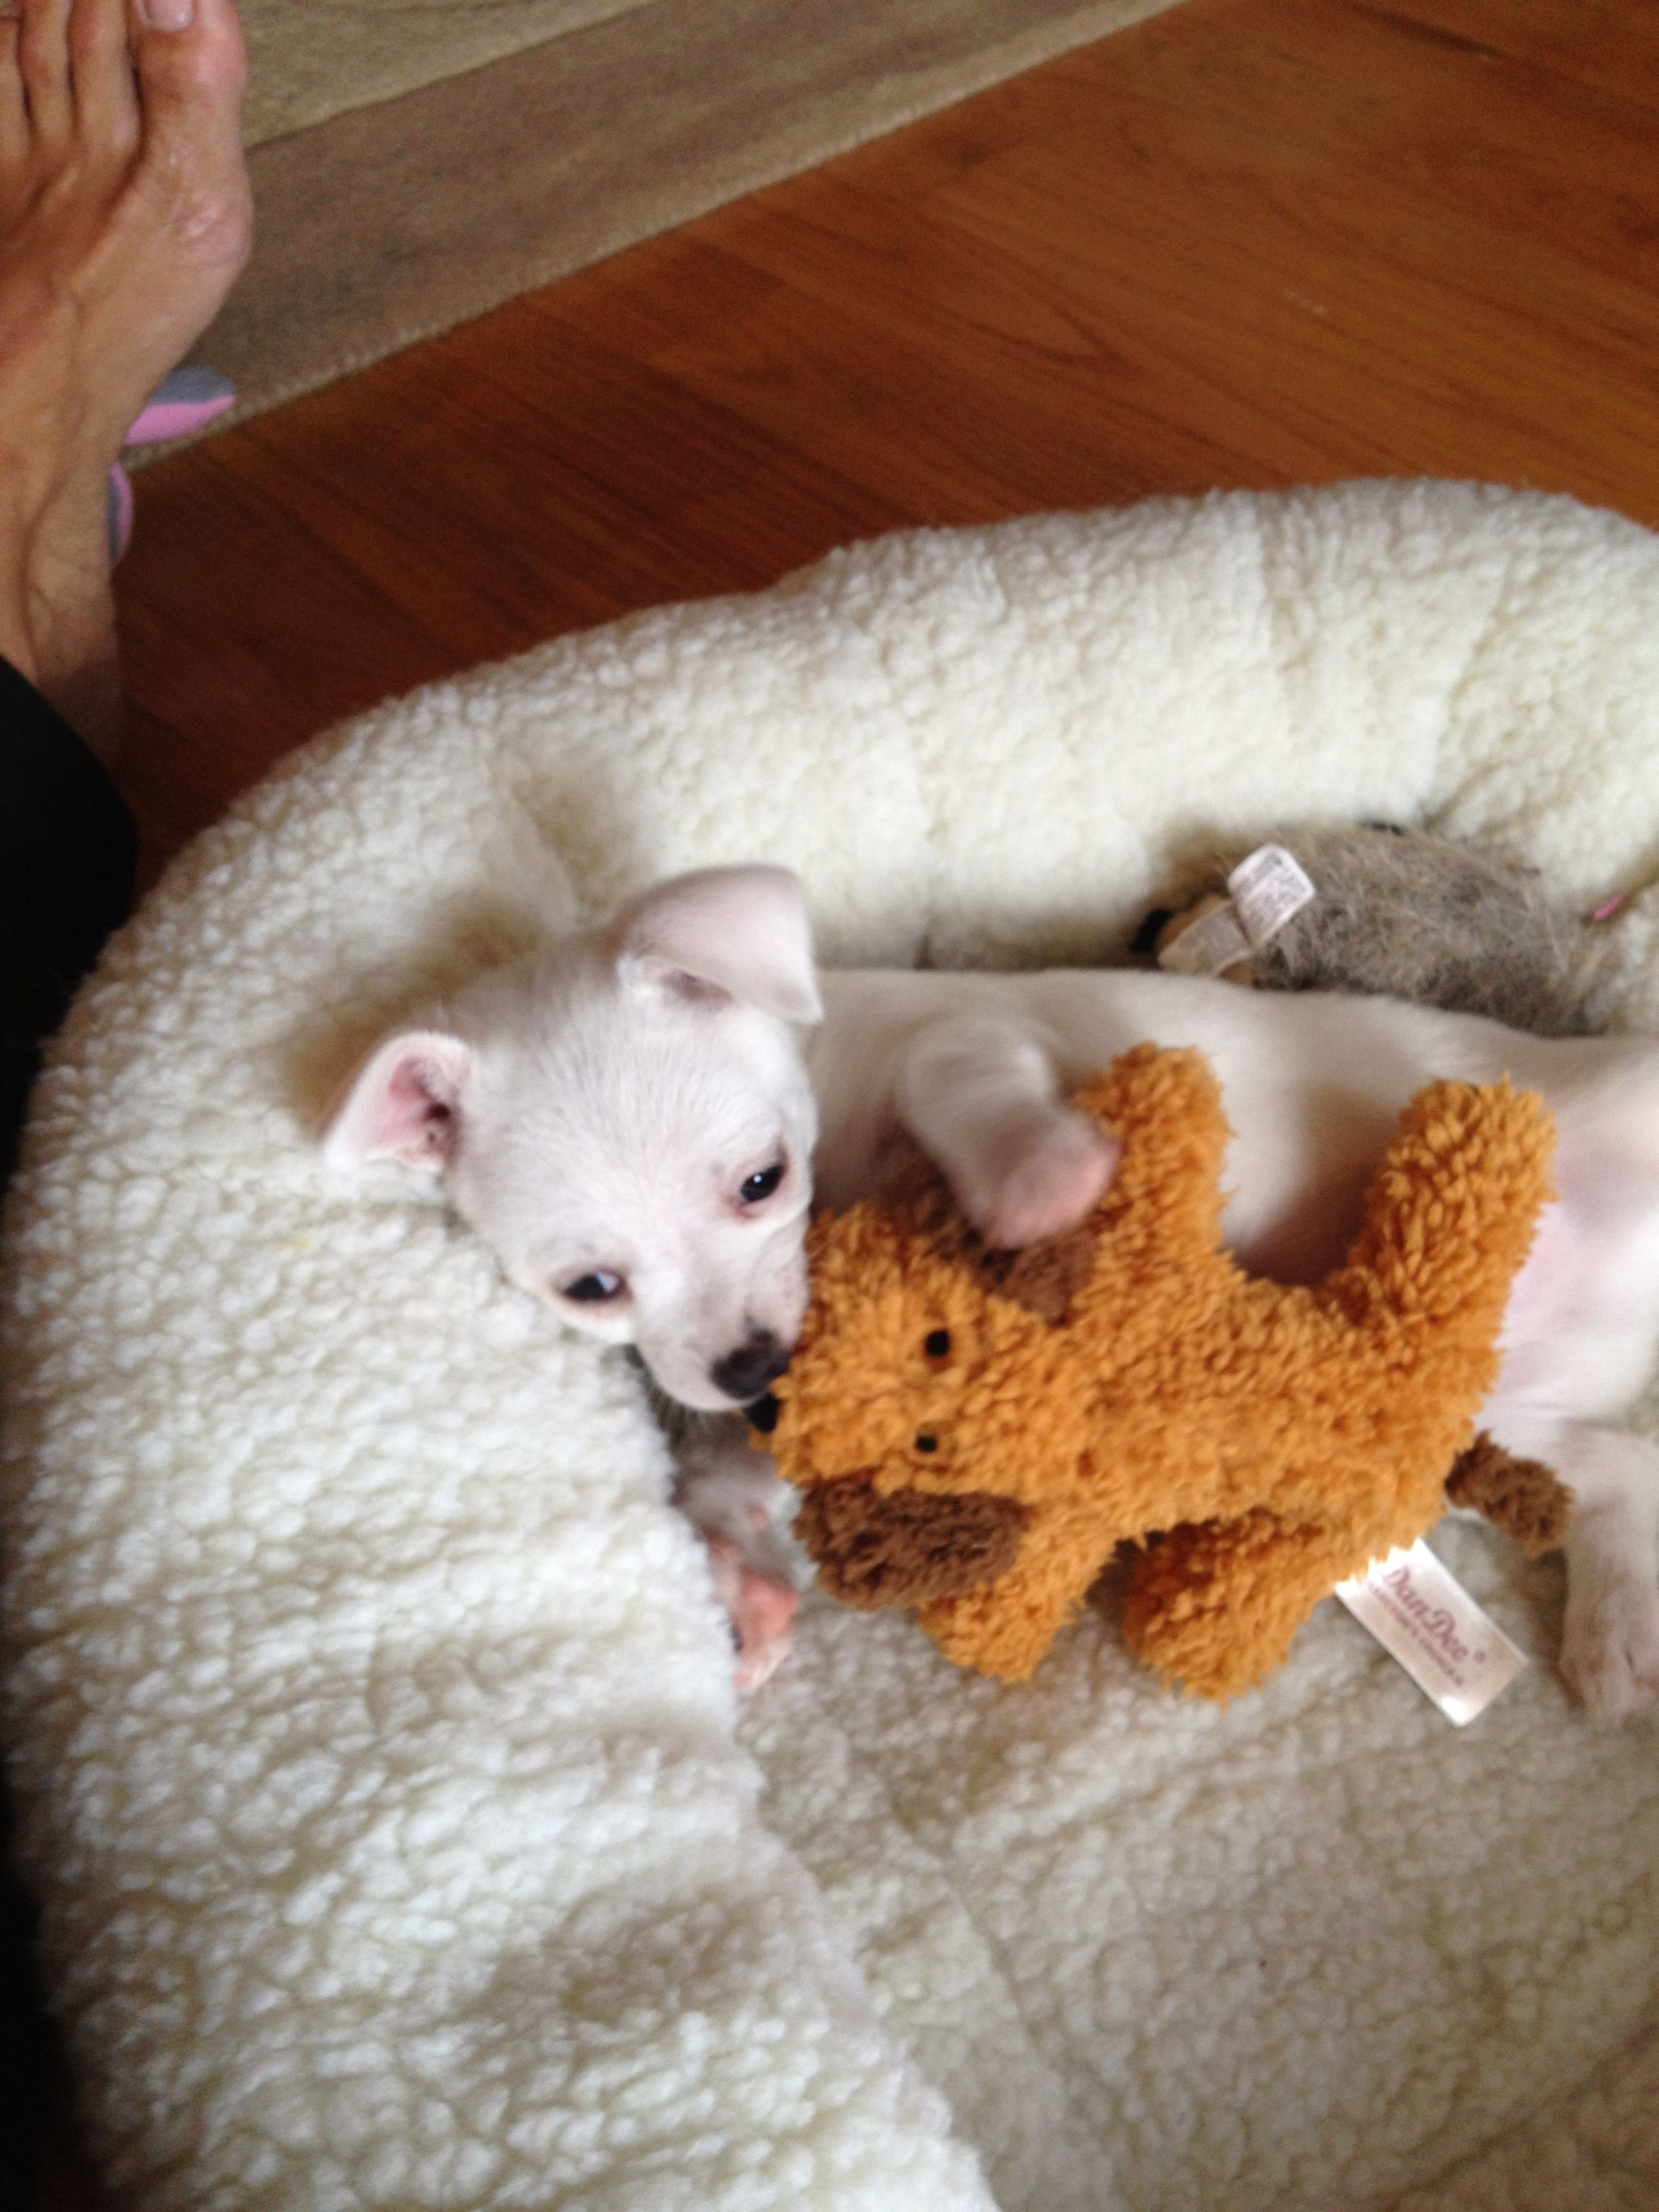 dc99d510 Chi-poo Louie 6 weeks Ferret, Chihuahua, Cute Dogs, Beautiful Dogs,